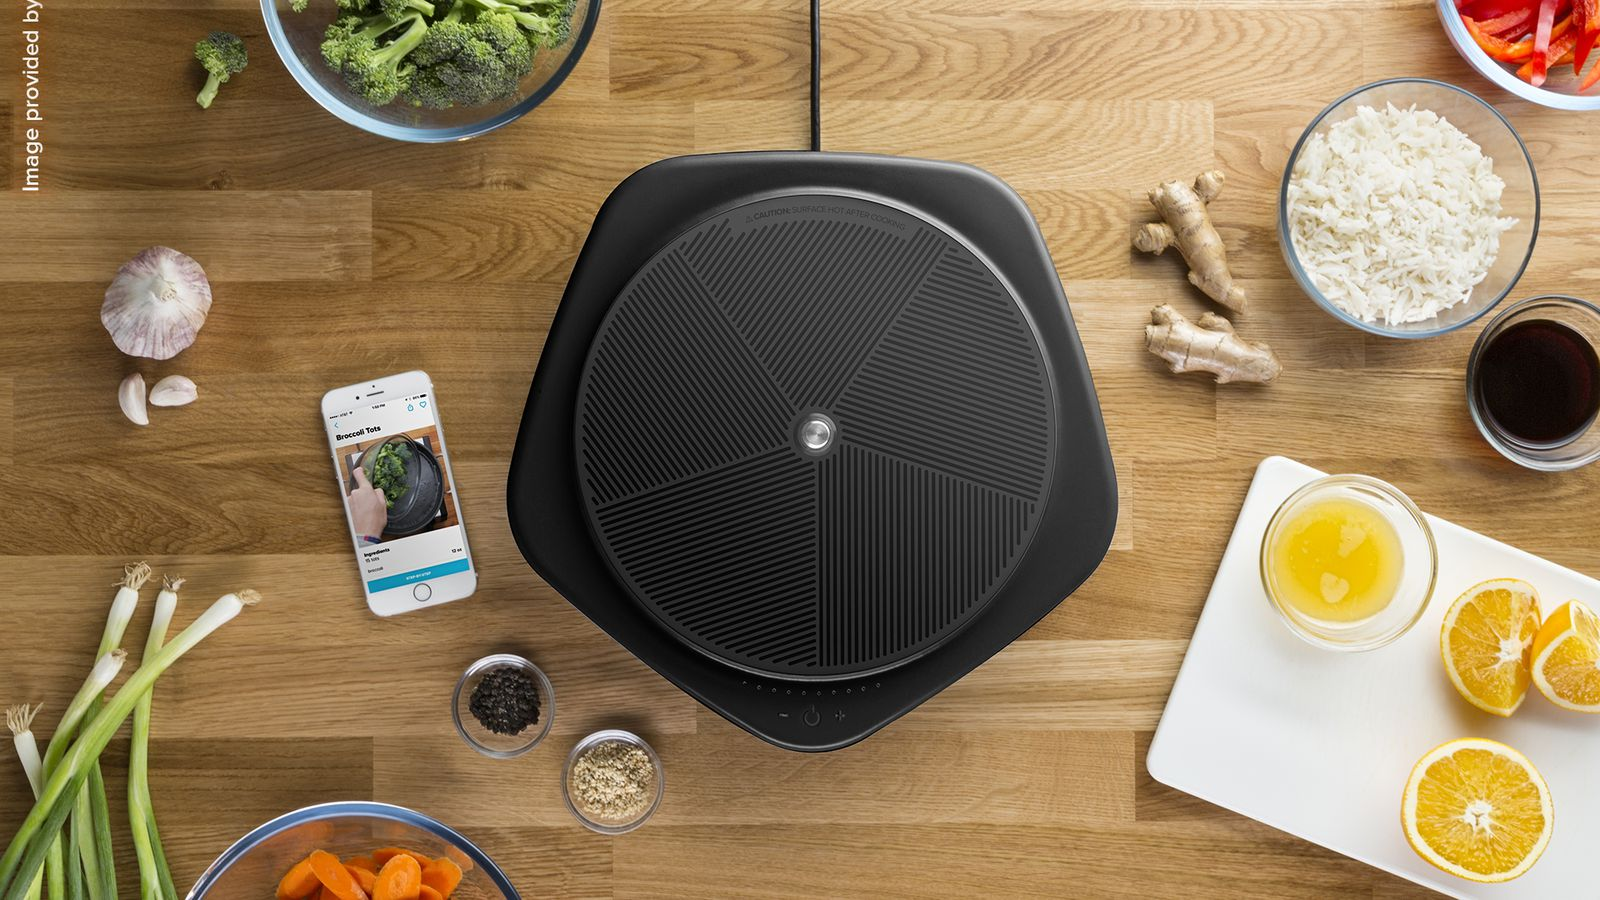 BuzzFeed Made a Smart Hot Plate that Syncs with its Viral Cooking Videos